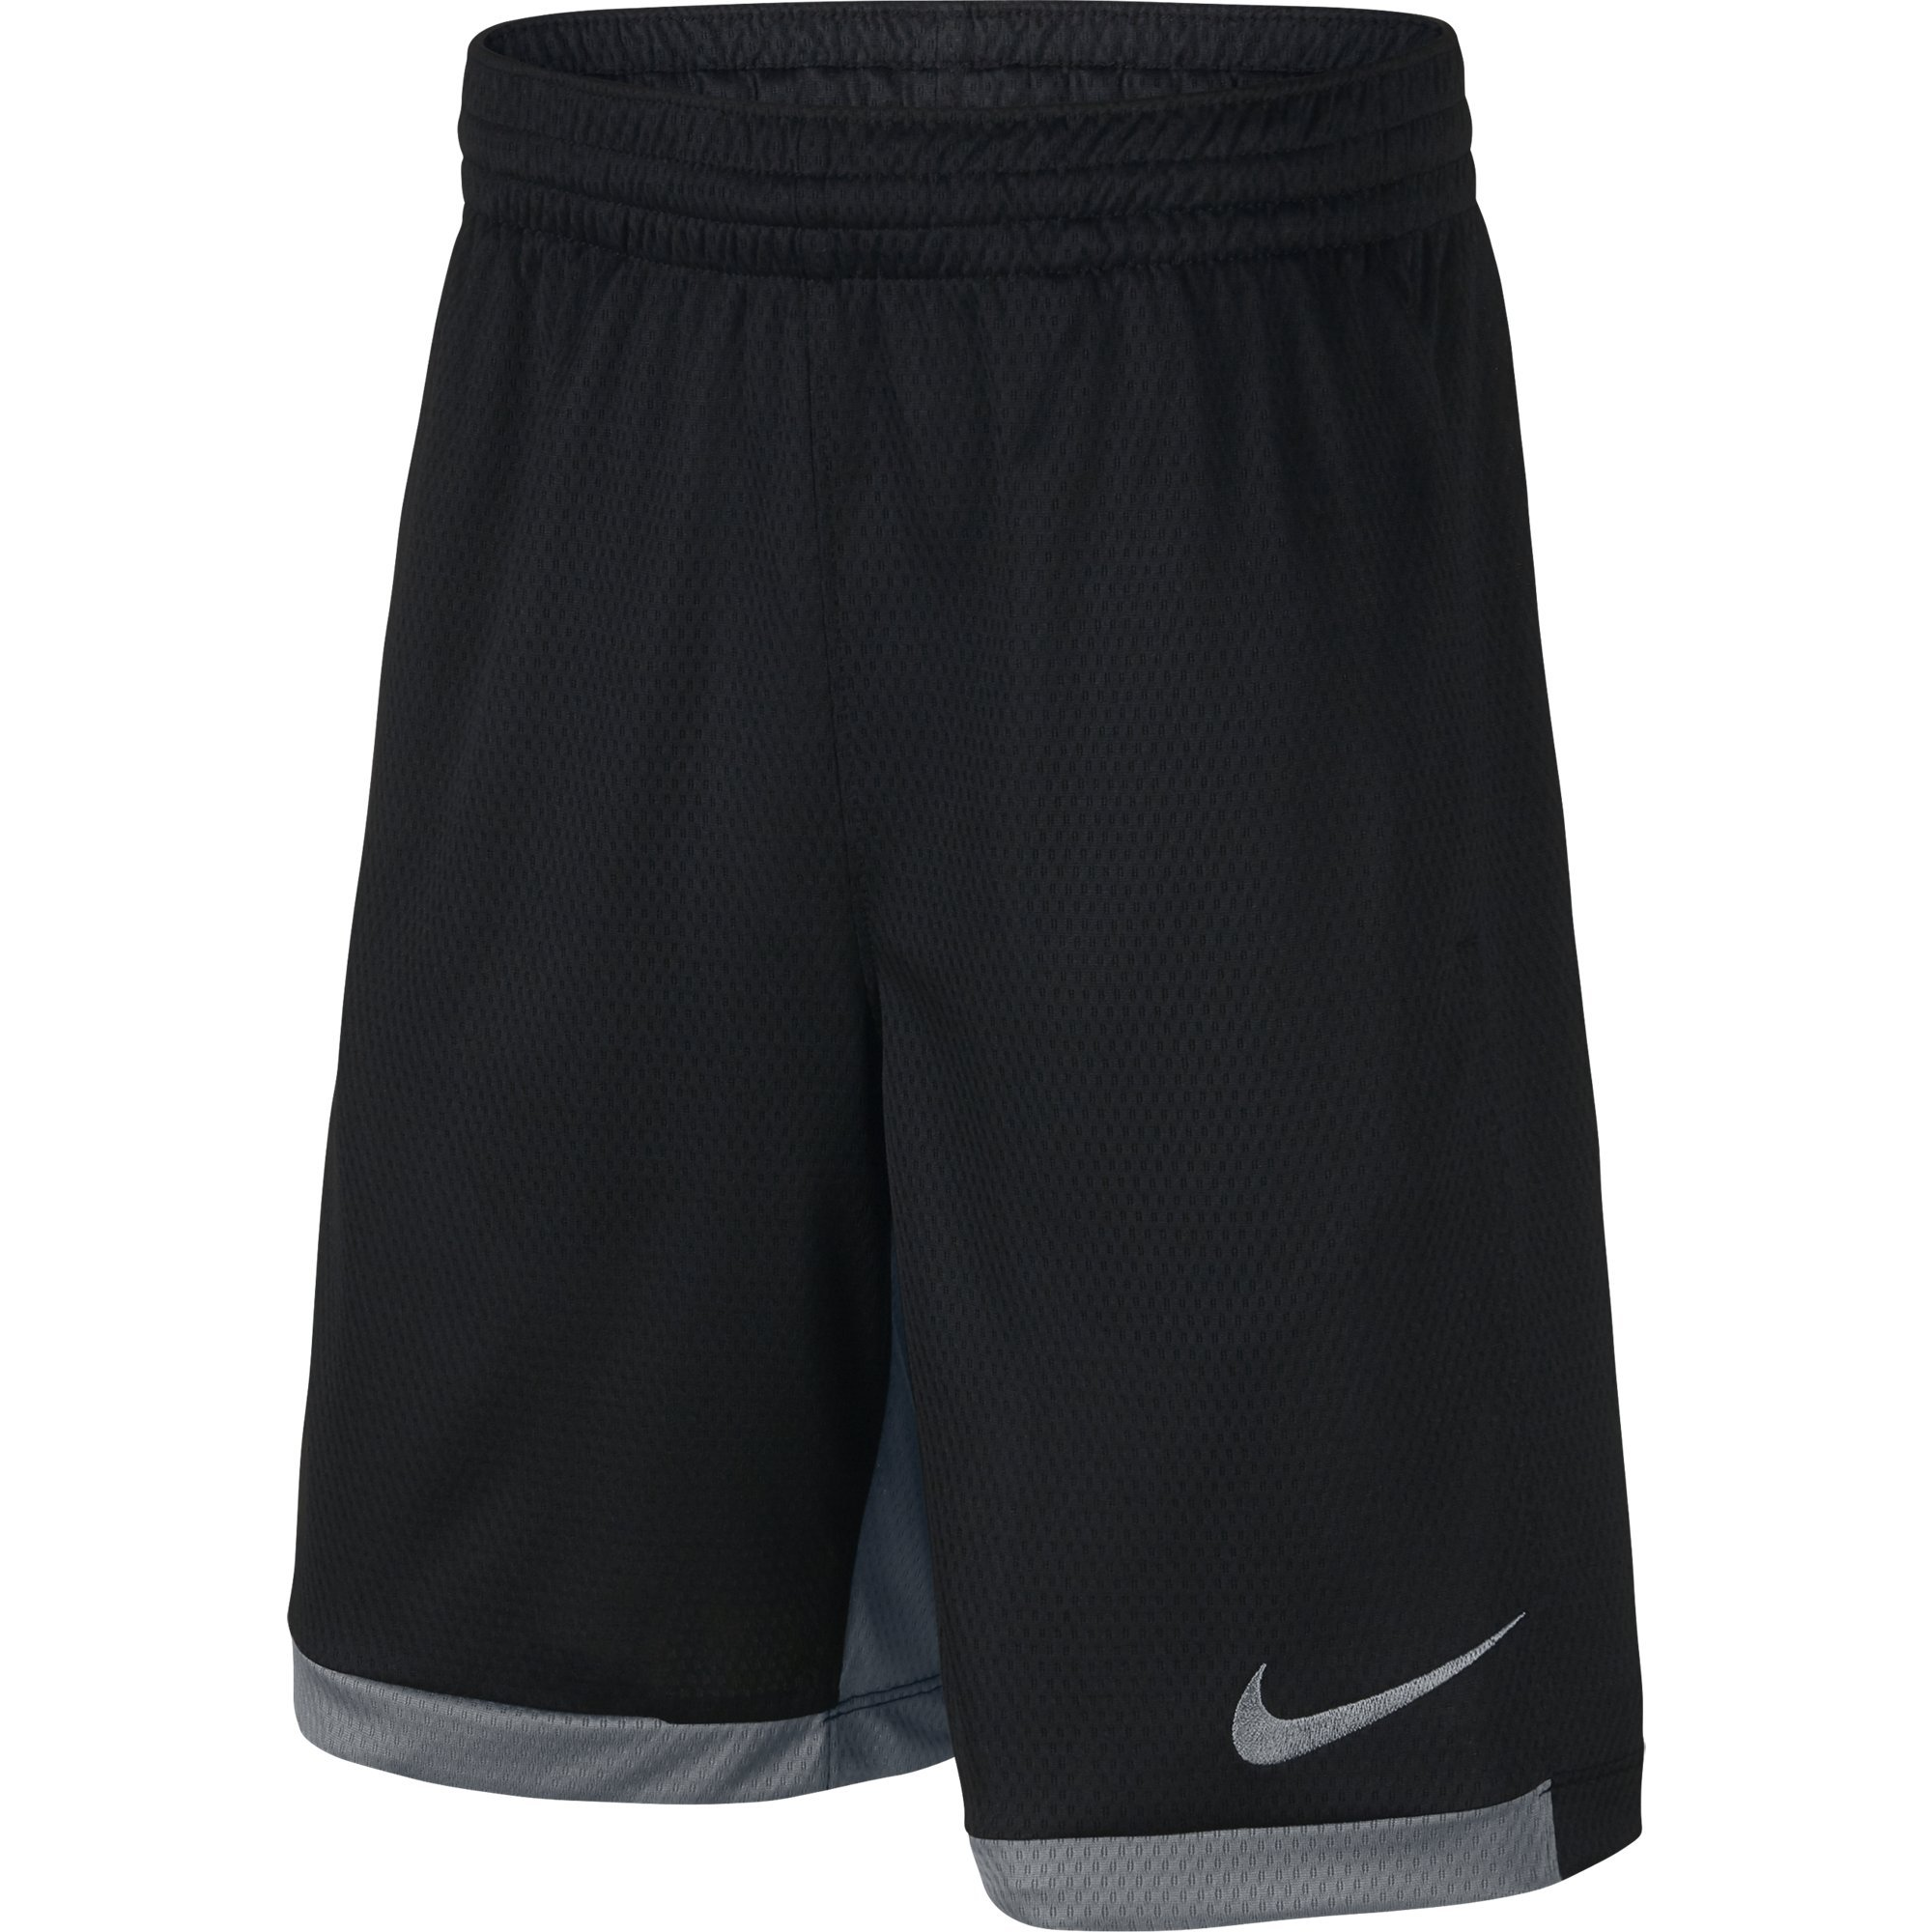 NIKE Boys' Dry Trophy Athletic Shorts, Black/Cool Grey/Cool Grey, X-Small